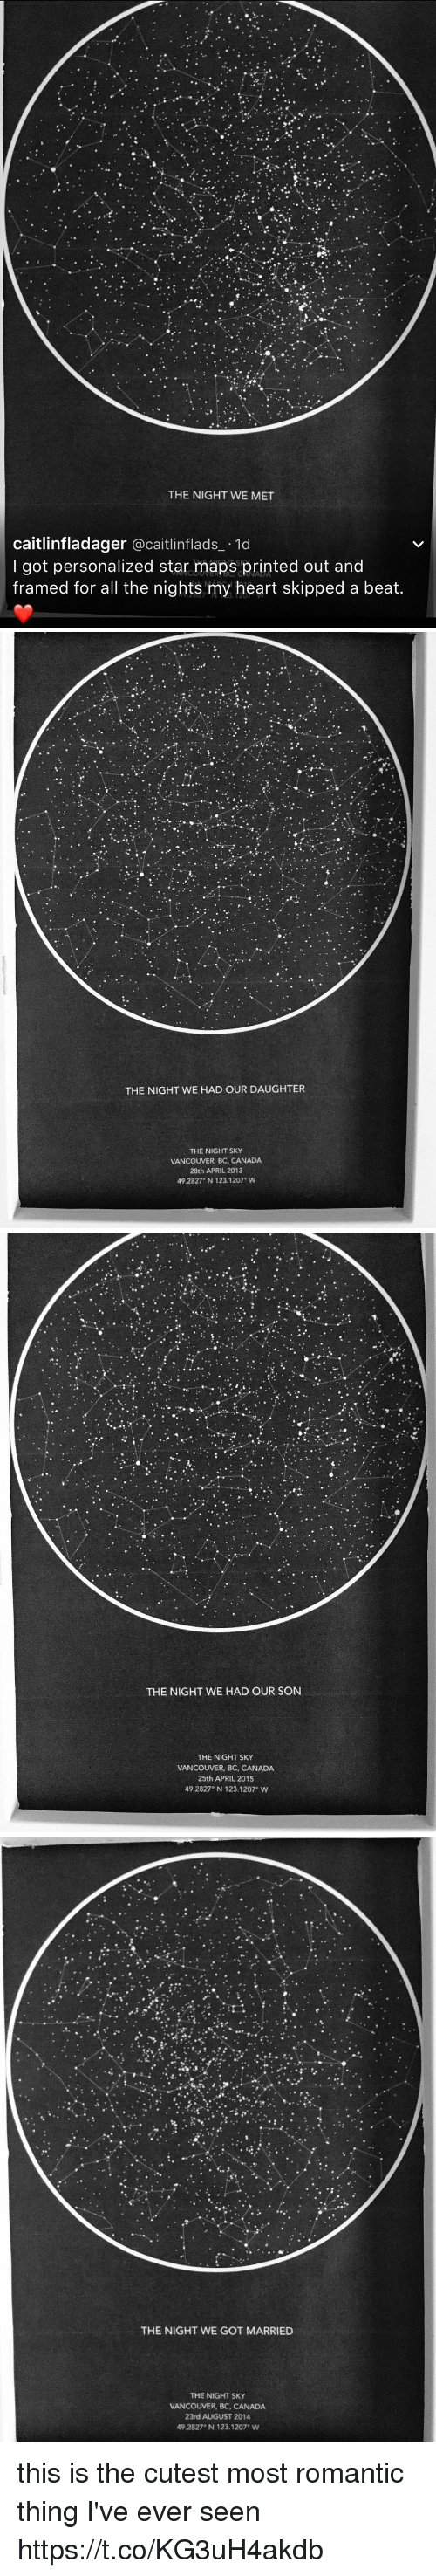 Canada, Heart, and Maps: THE NIGHT WE MET  caitlinfladager  acaitlinflads 1d  I got personalized star maps printed out and  framed for all the nights my heart skipped a beat.   THE NIGHT WE HAD OUR DAUGHTER  THE NIGHT SKY  VANCOUVER, BC, CANADA  28th APRIL 2013  49.2827 N 123.1207 W   THE NIGHT WE HAD OUR SON  THE NIGHT SKY  VANCOUVER, BC, CANADA  25th APRIL 2015  49.2827 N 123.1207° W   THE NIGHT WE GOT MARRIED  THE NIGHT SKY  VANCOUVER, BC, CANADA  23rd AUGUST 2014  49.2827 N 123.1207 W this is the cutest most romantic thing I've ever seen https://t.co/KG3uH4akdb